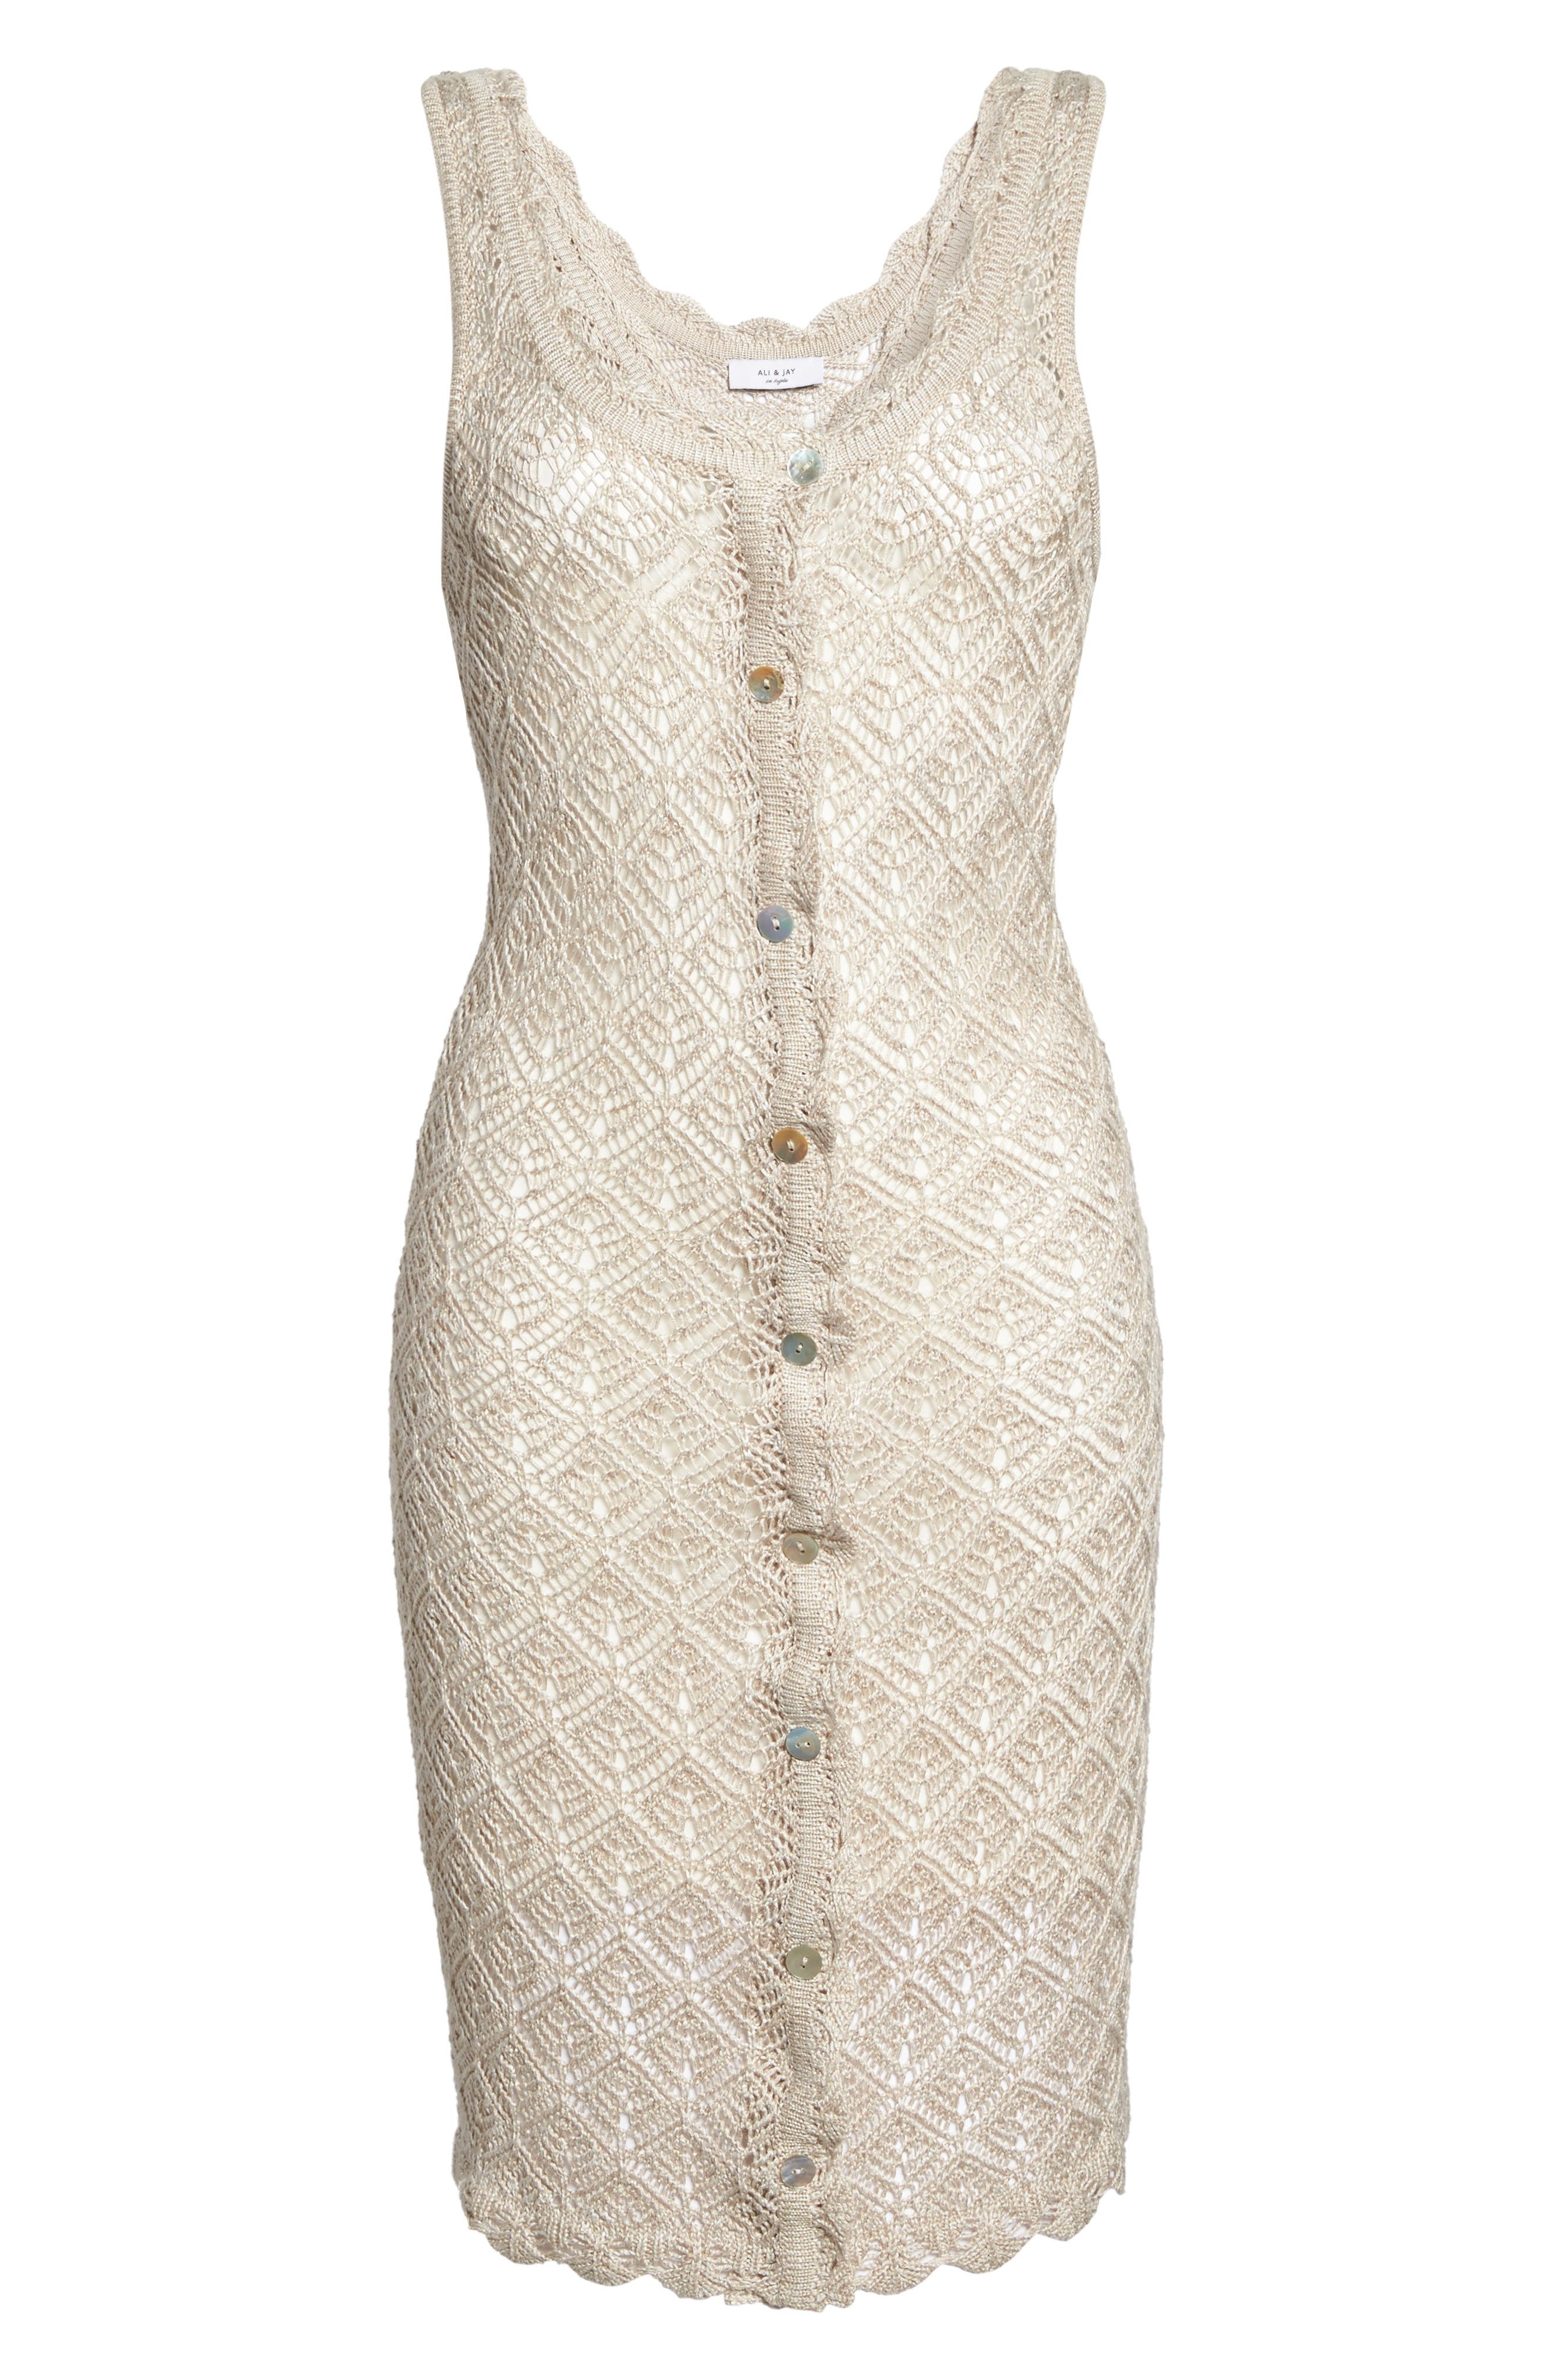 Picnic By The Lagoon Lace Dress,                             Alternate thumbnail 6, color,                             261